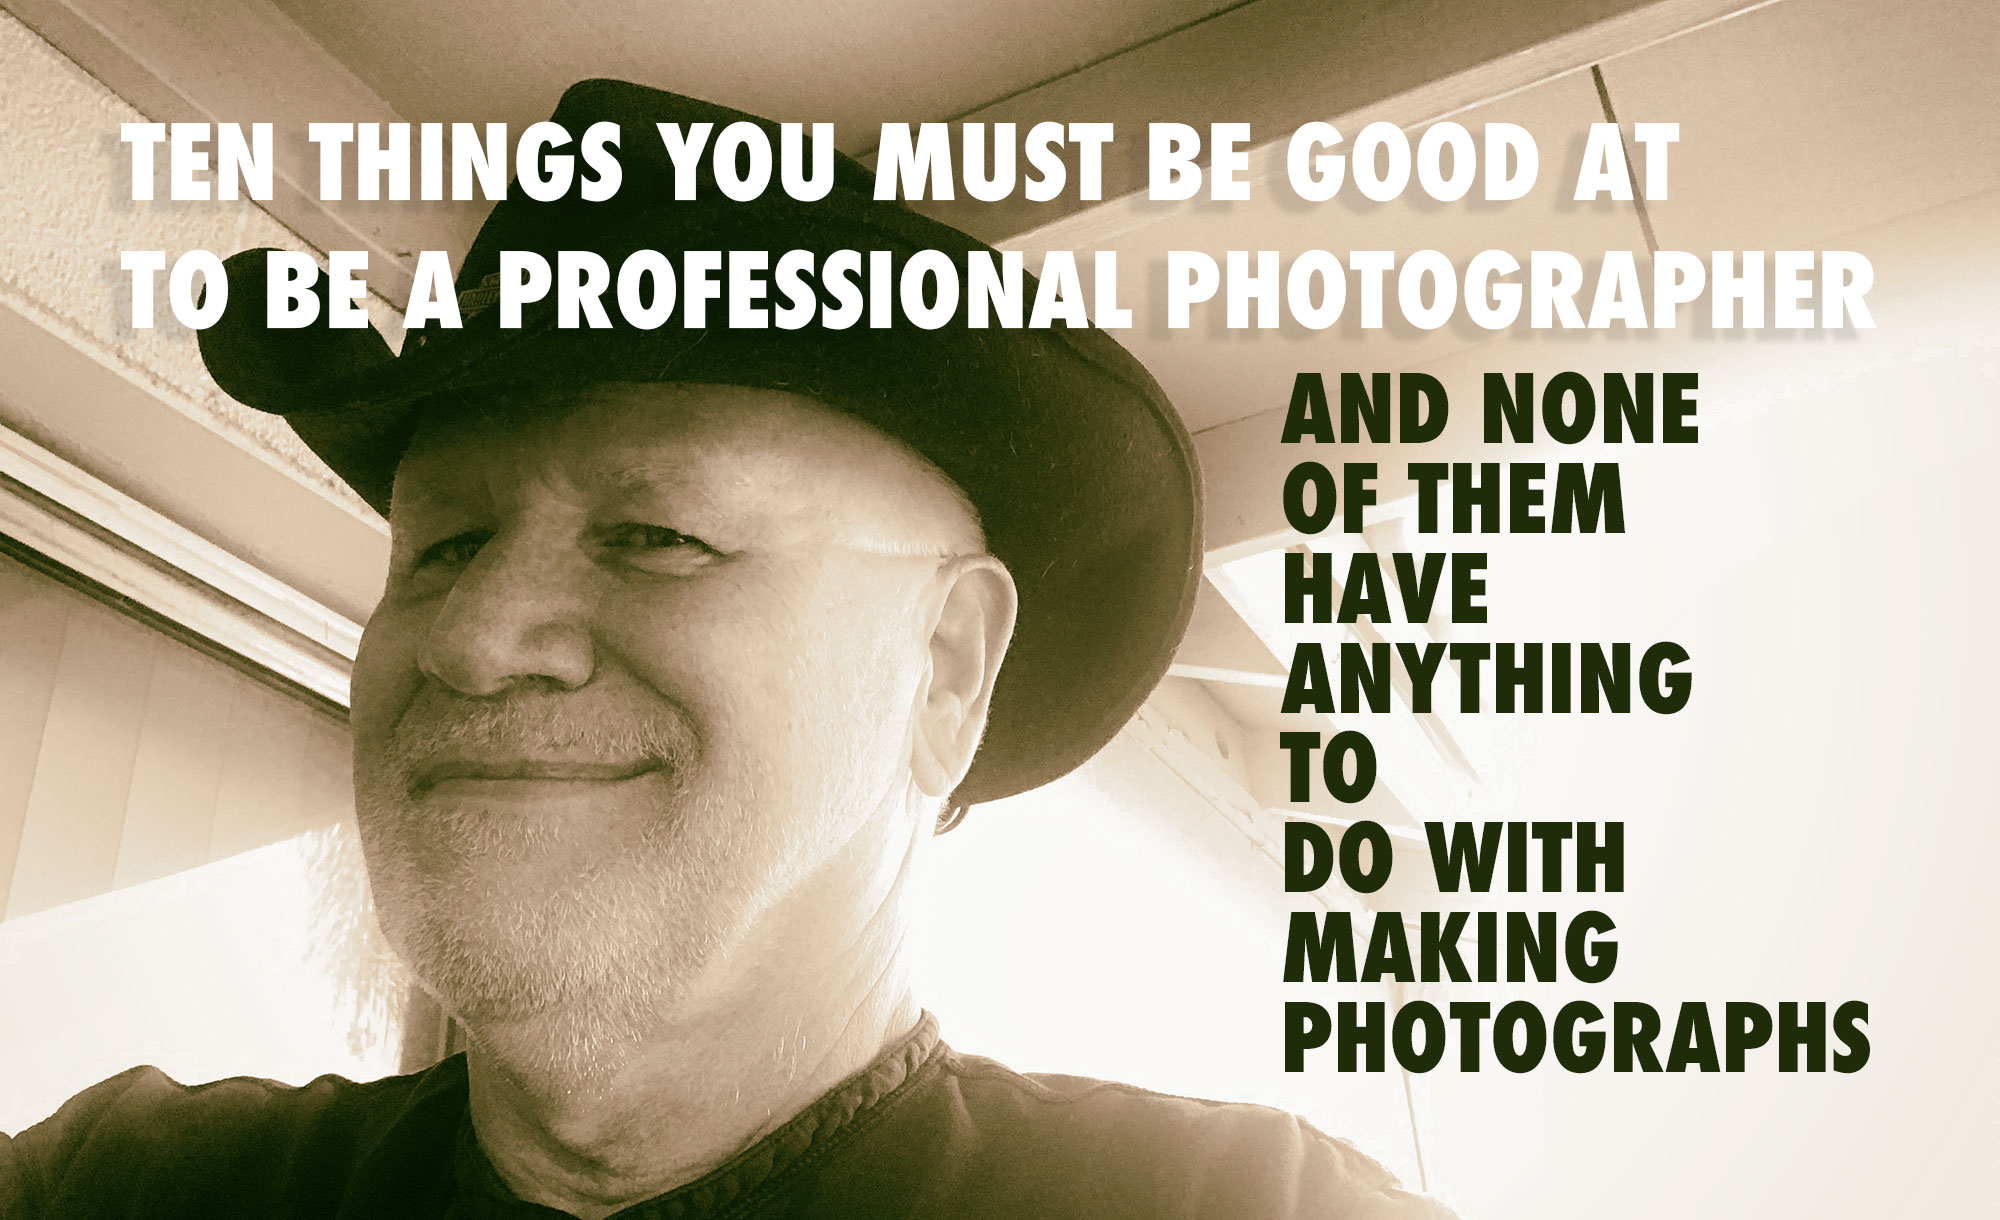 10 Non-Photographic Things You Must Be Good At to Be a Pro